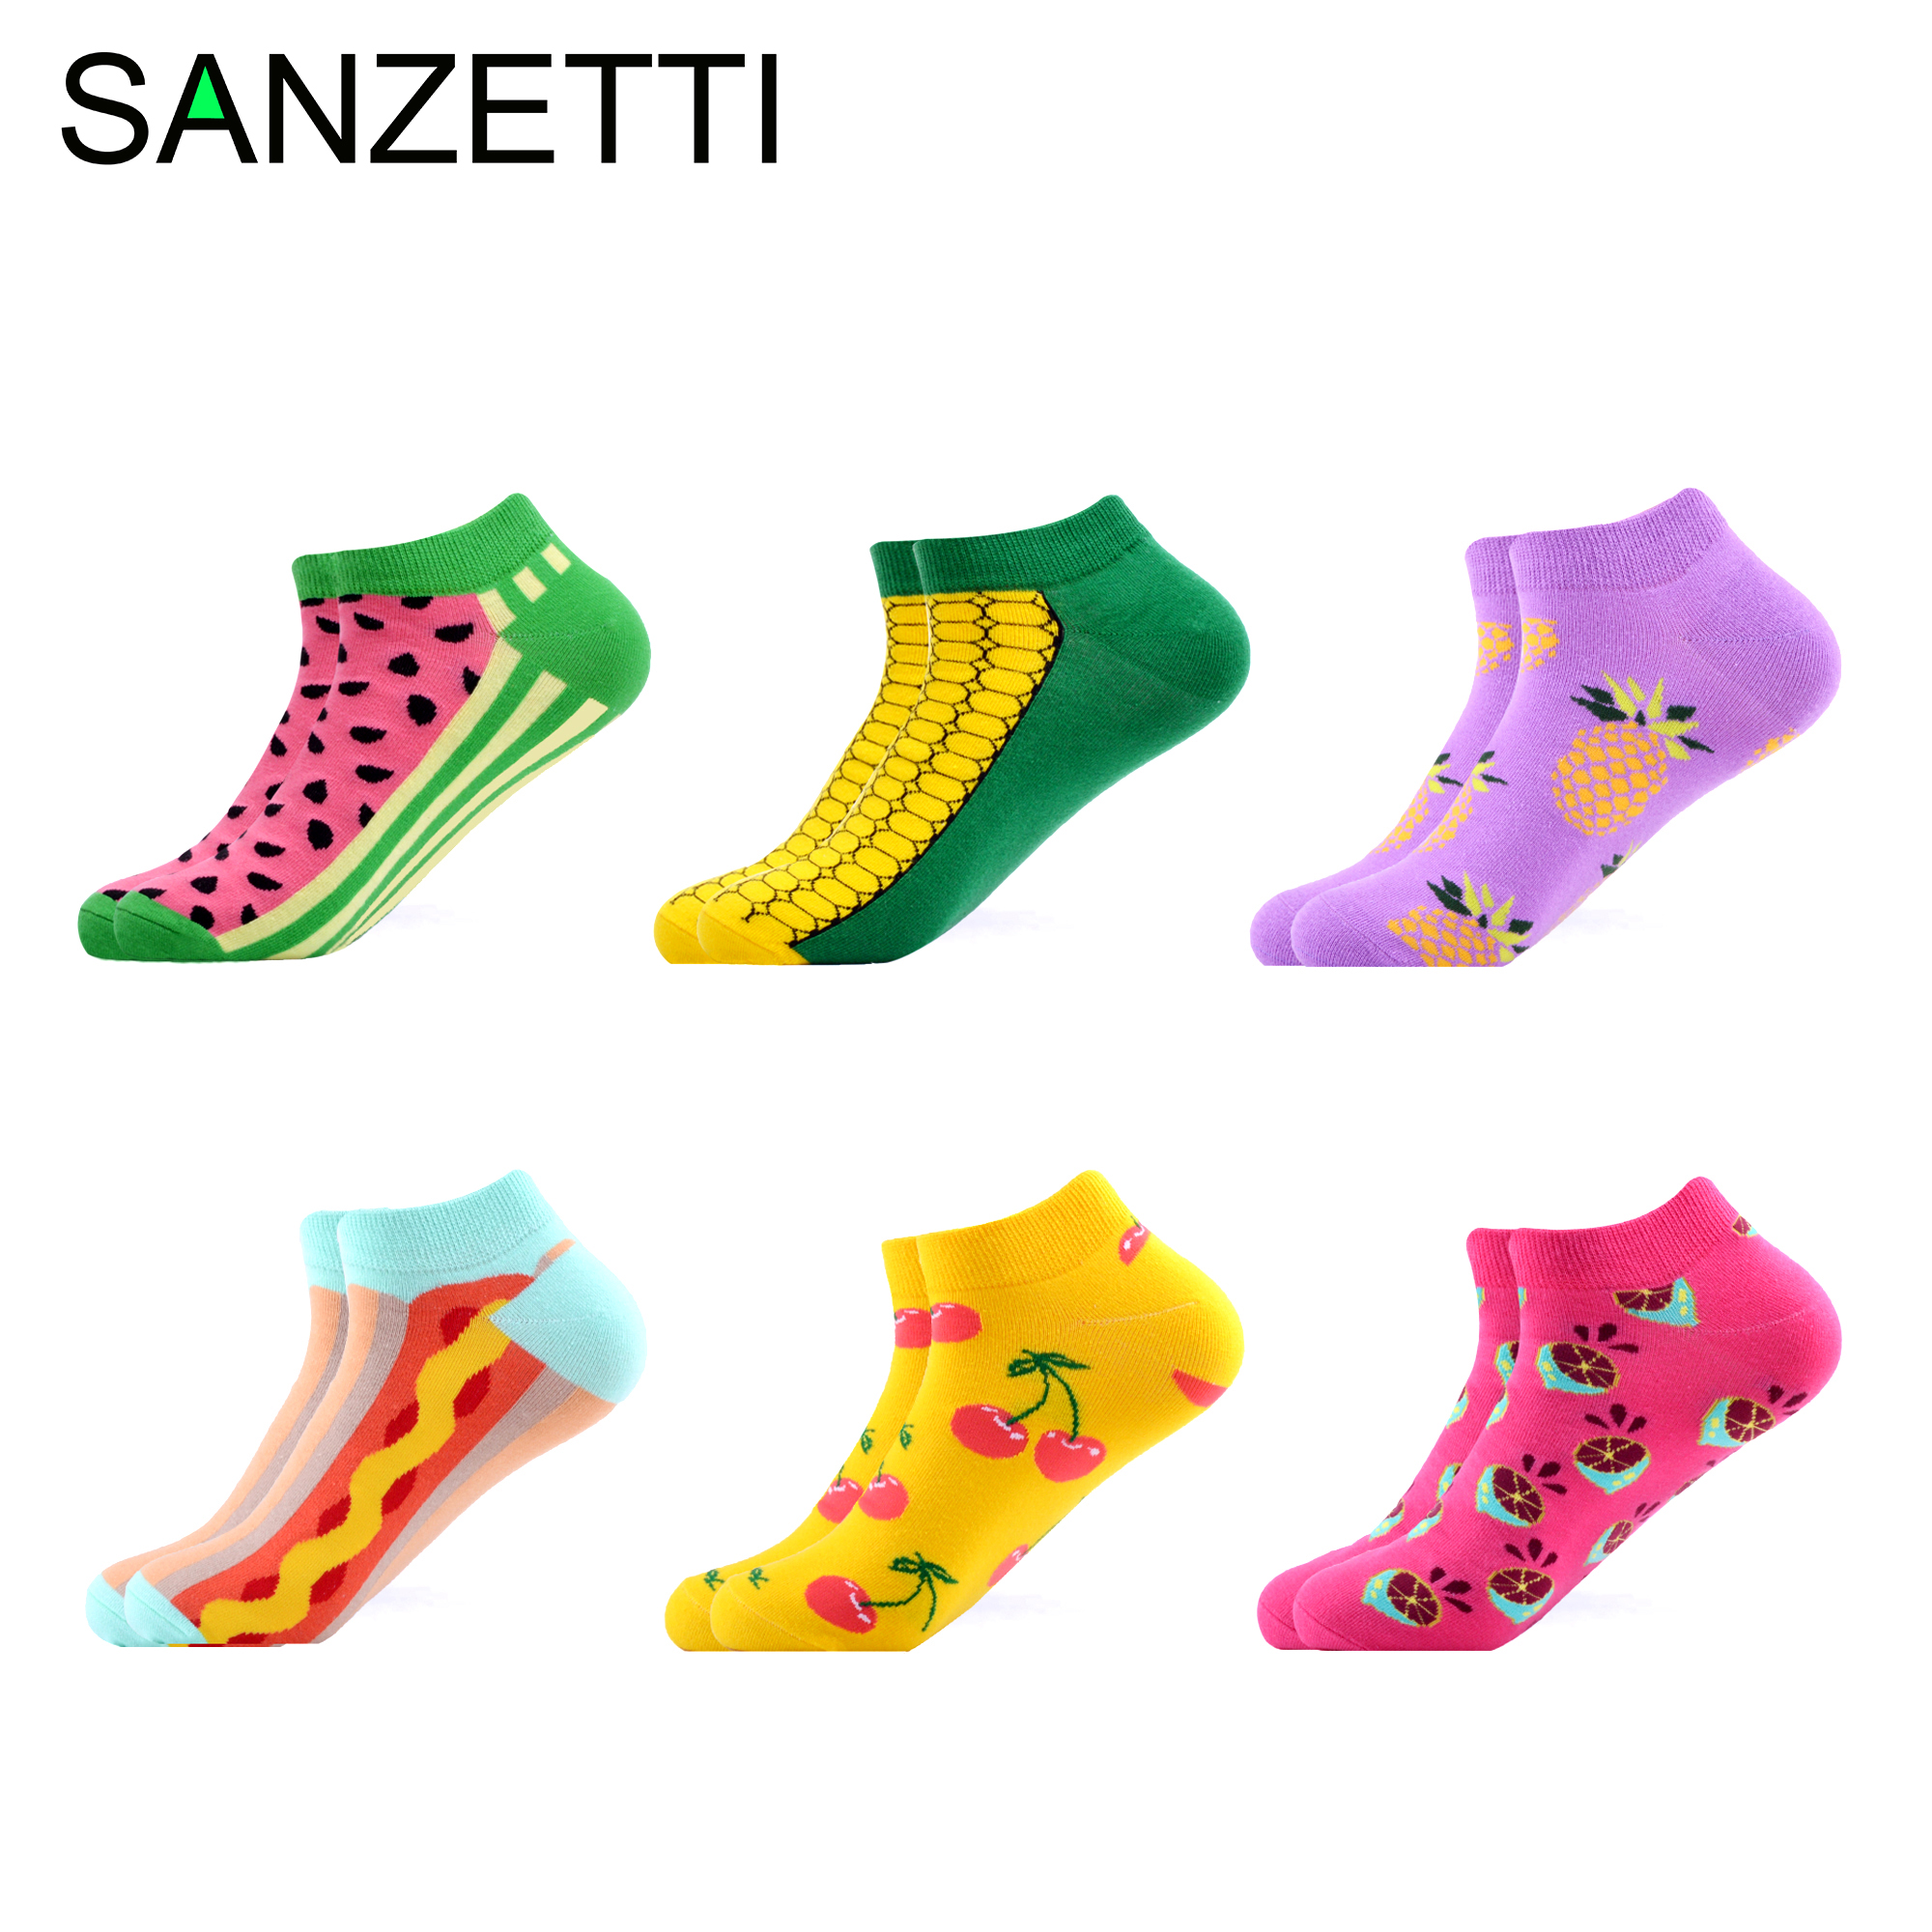 SANZETTI 6 Pairs/Lot Women Colorful Summer Casual Combed Cotton Ankle Socks Happy Hip Hop Harajuku Short Socks Dress Boat Socks